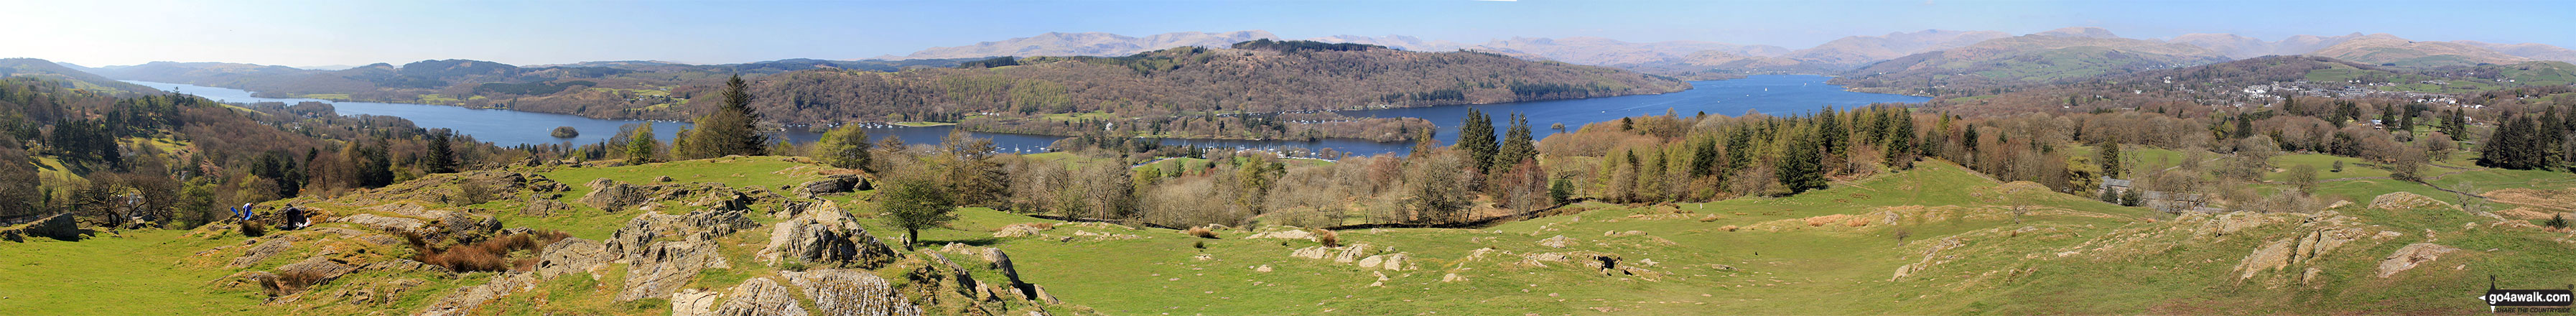 Lake Windermere and Bowness-on-Windermere from the summit of Brant Fell